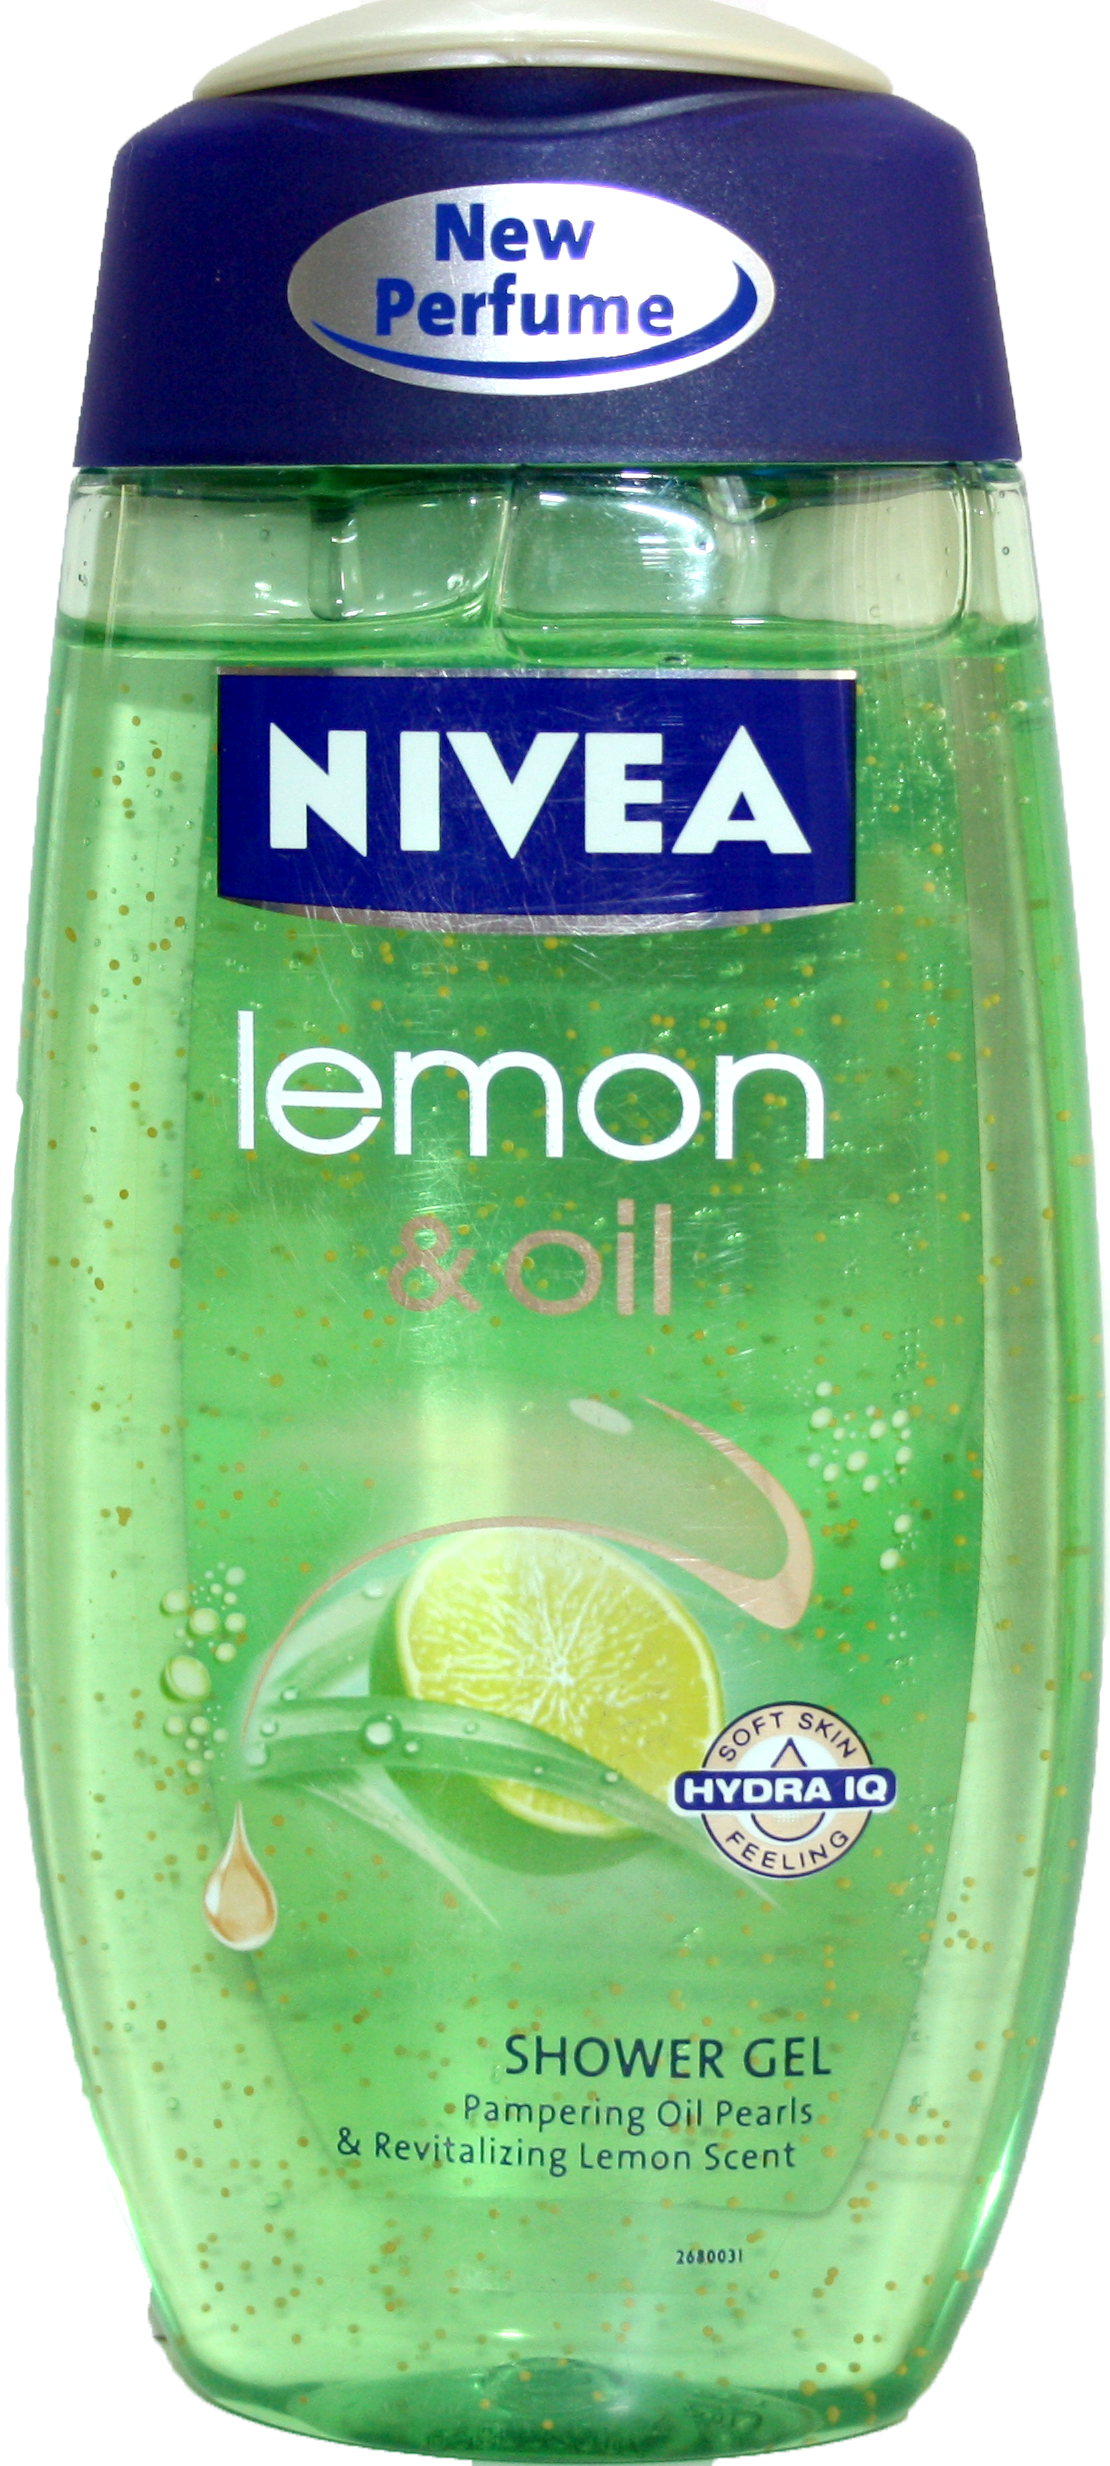 Reviewed by nisha for. Lime clipart lamon